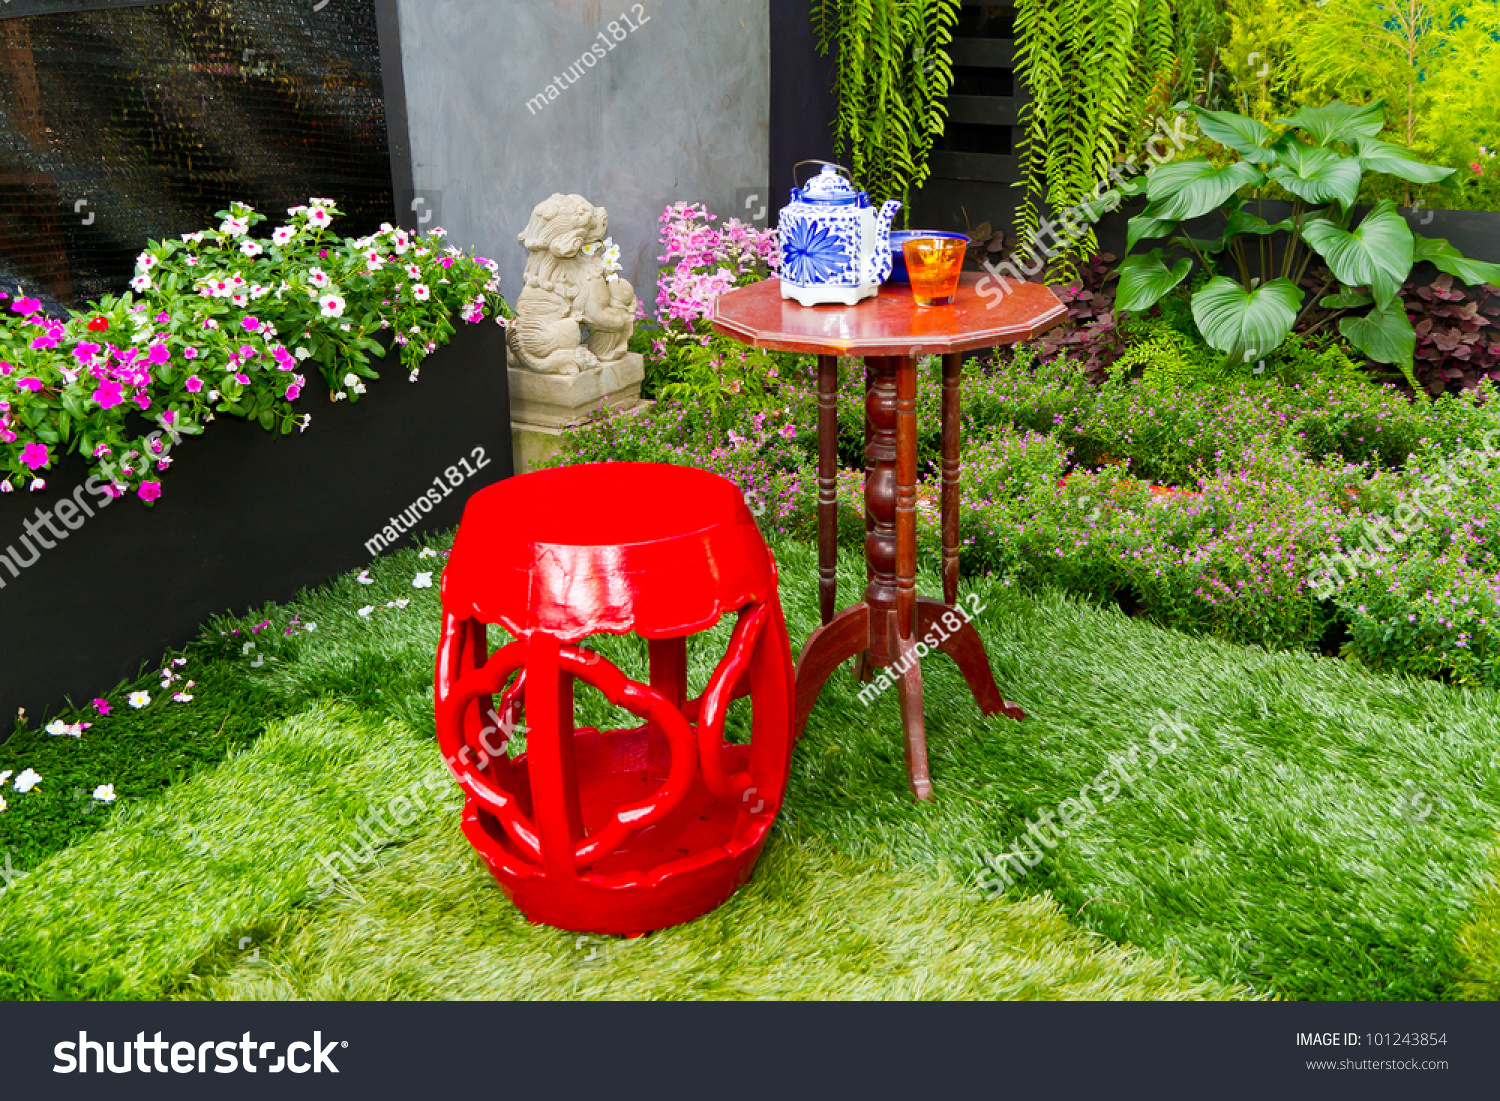 Small Garden Red Chair Decorate Chinese Stock Photo 101243854 ...